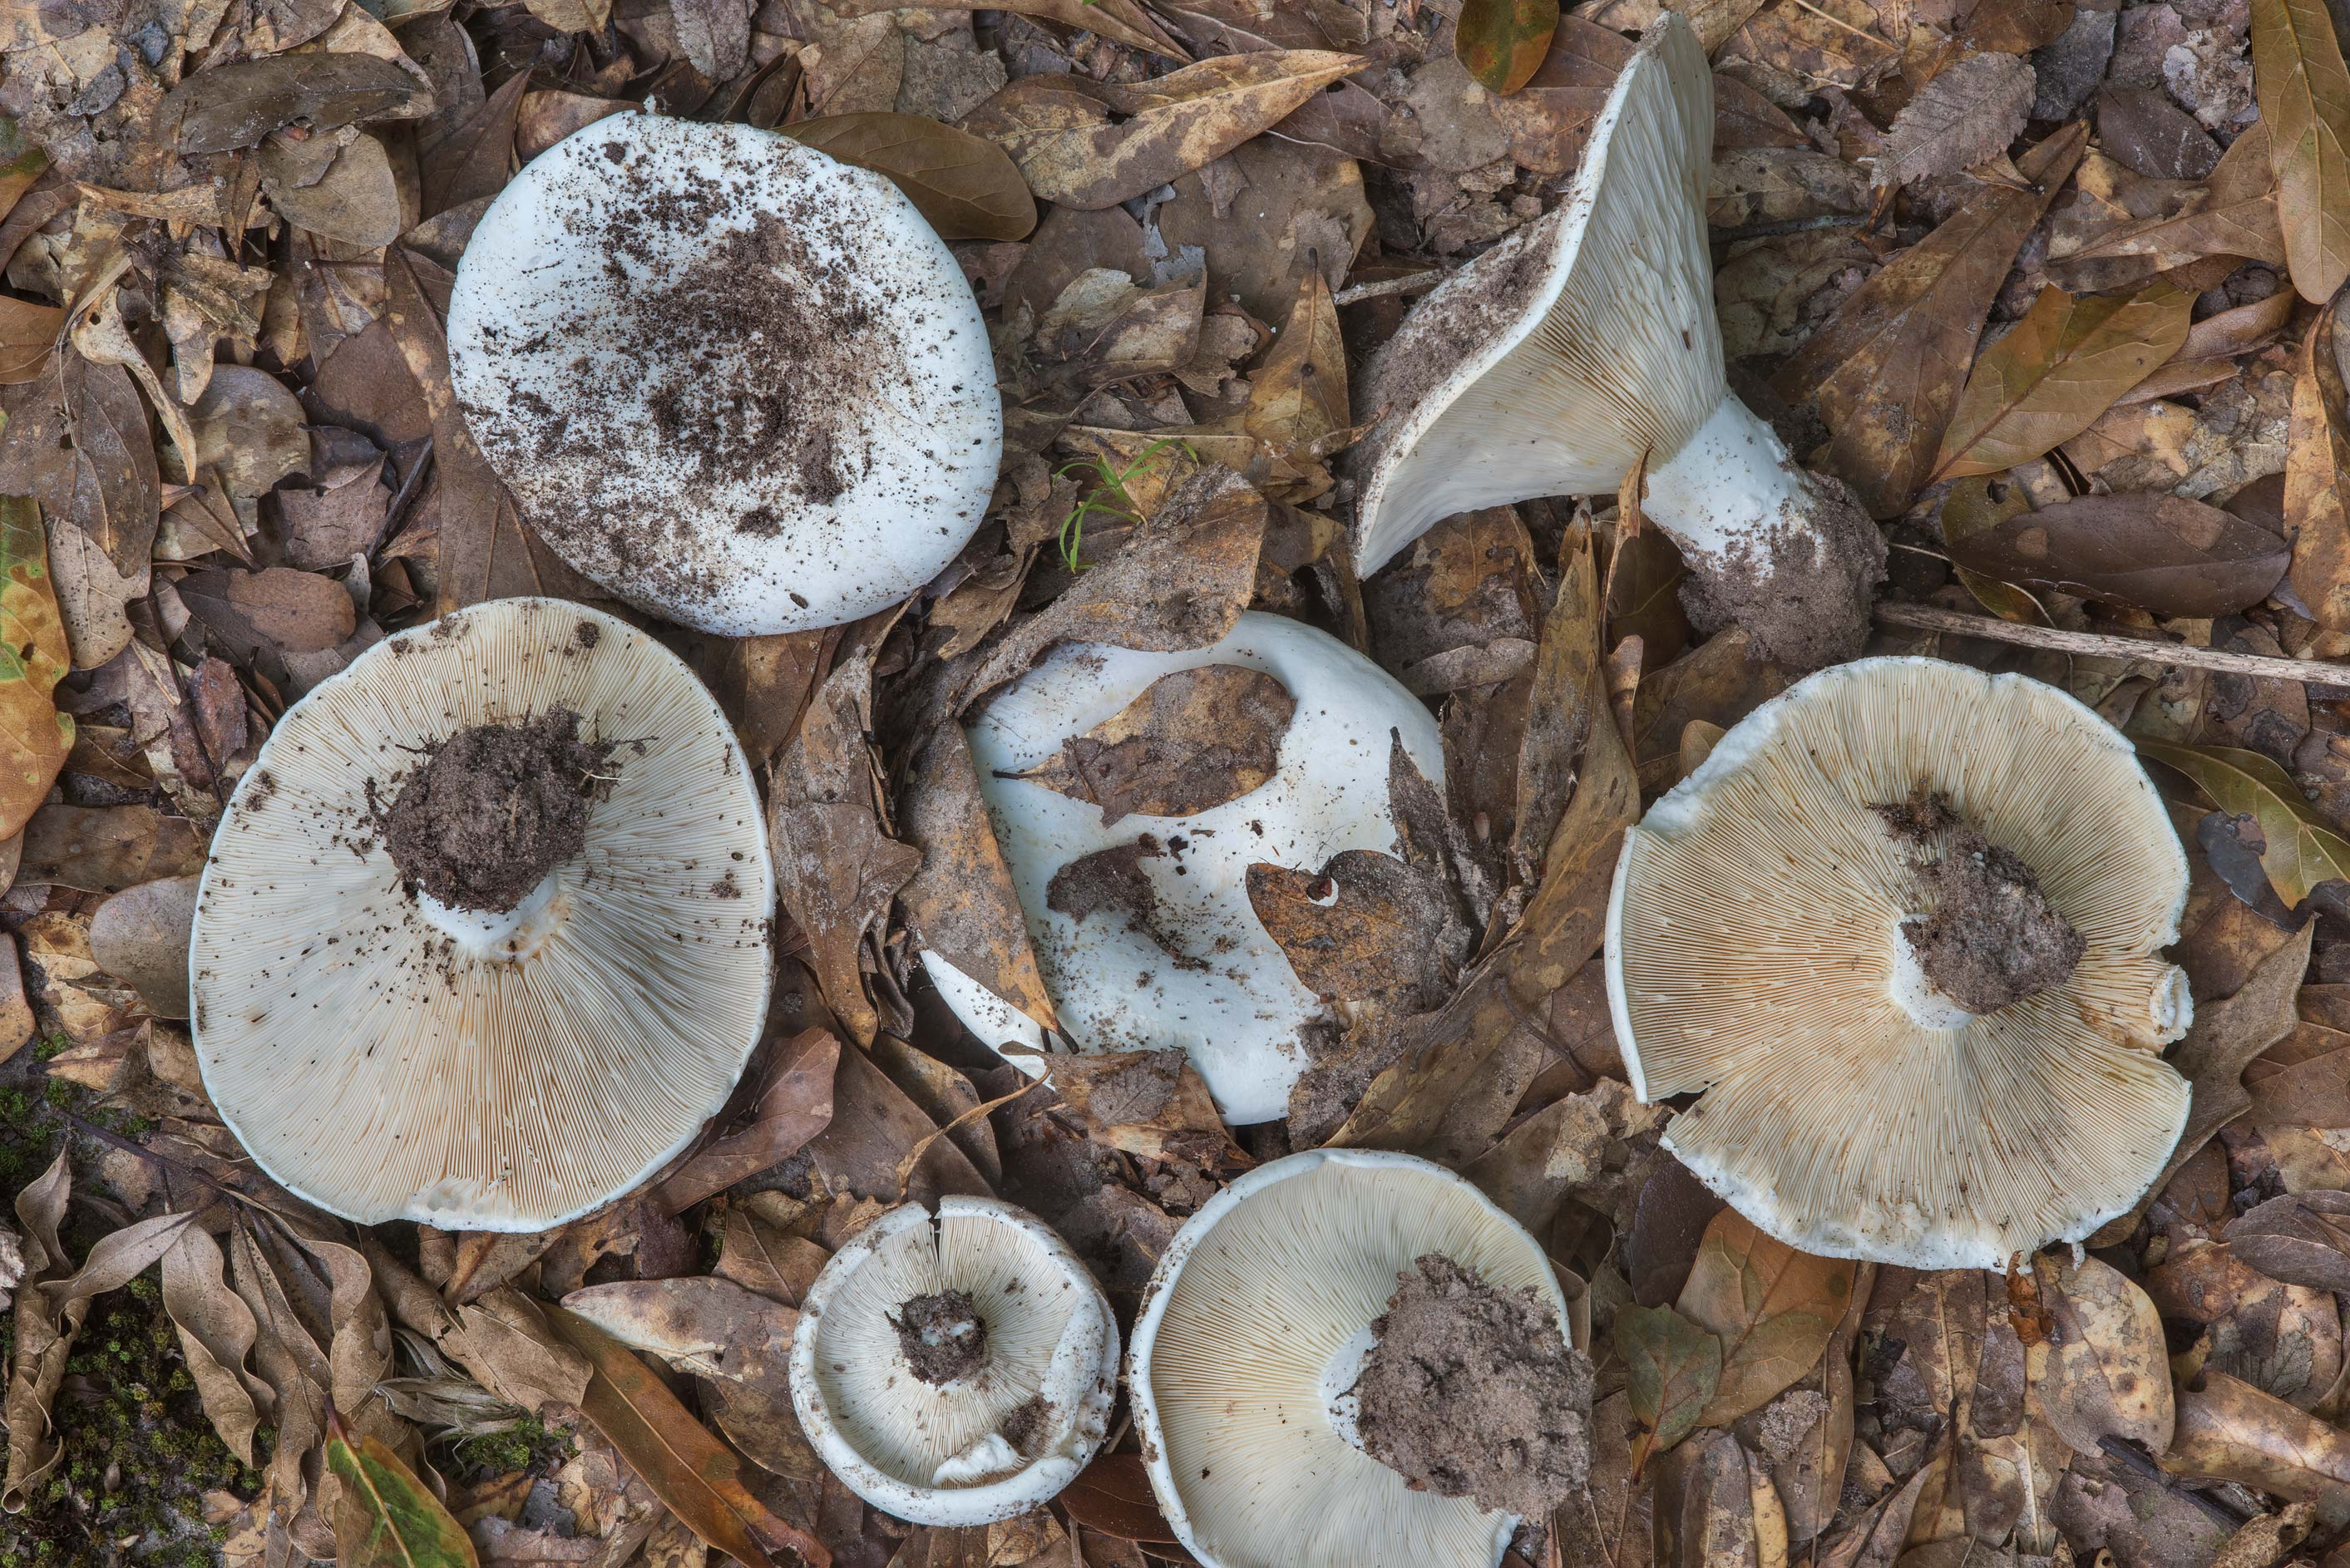 Milkcap mushrooms Lactifluus piperatus in dry oak...Creek Park. College Station, Texas